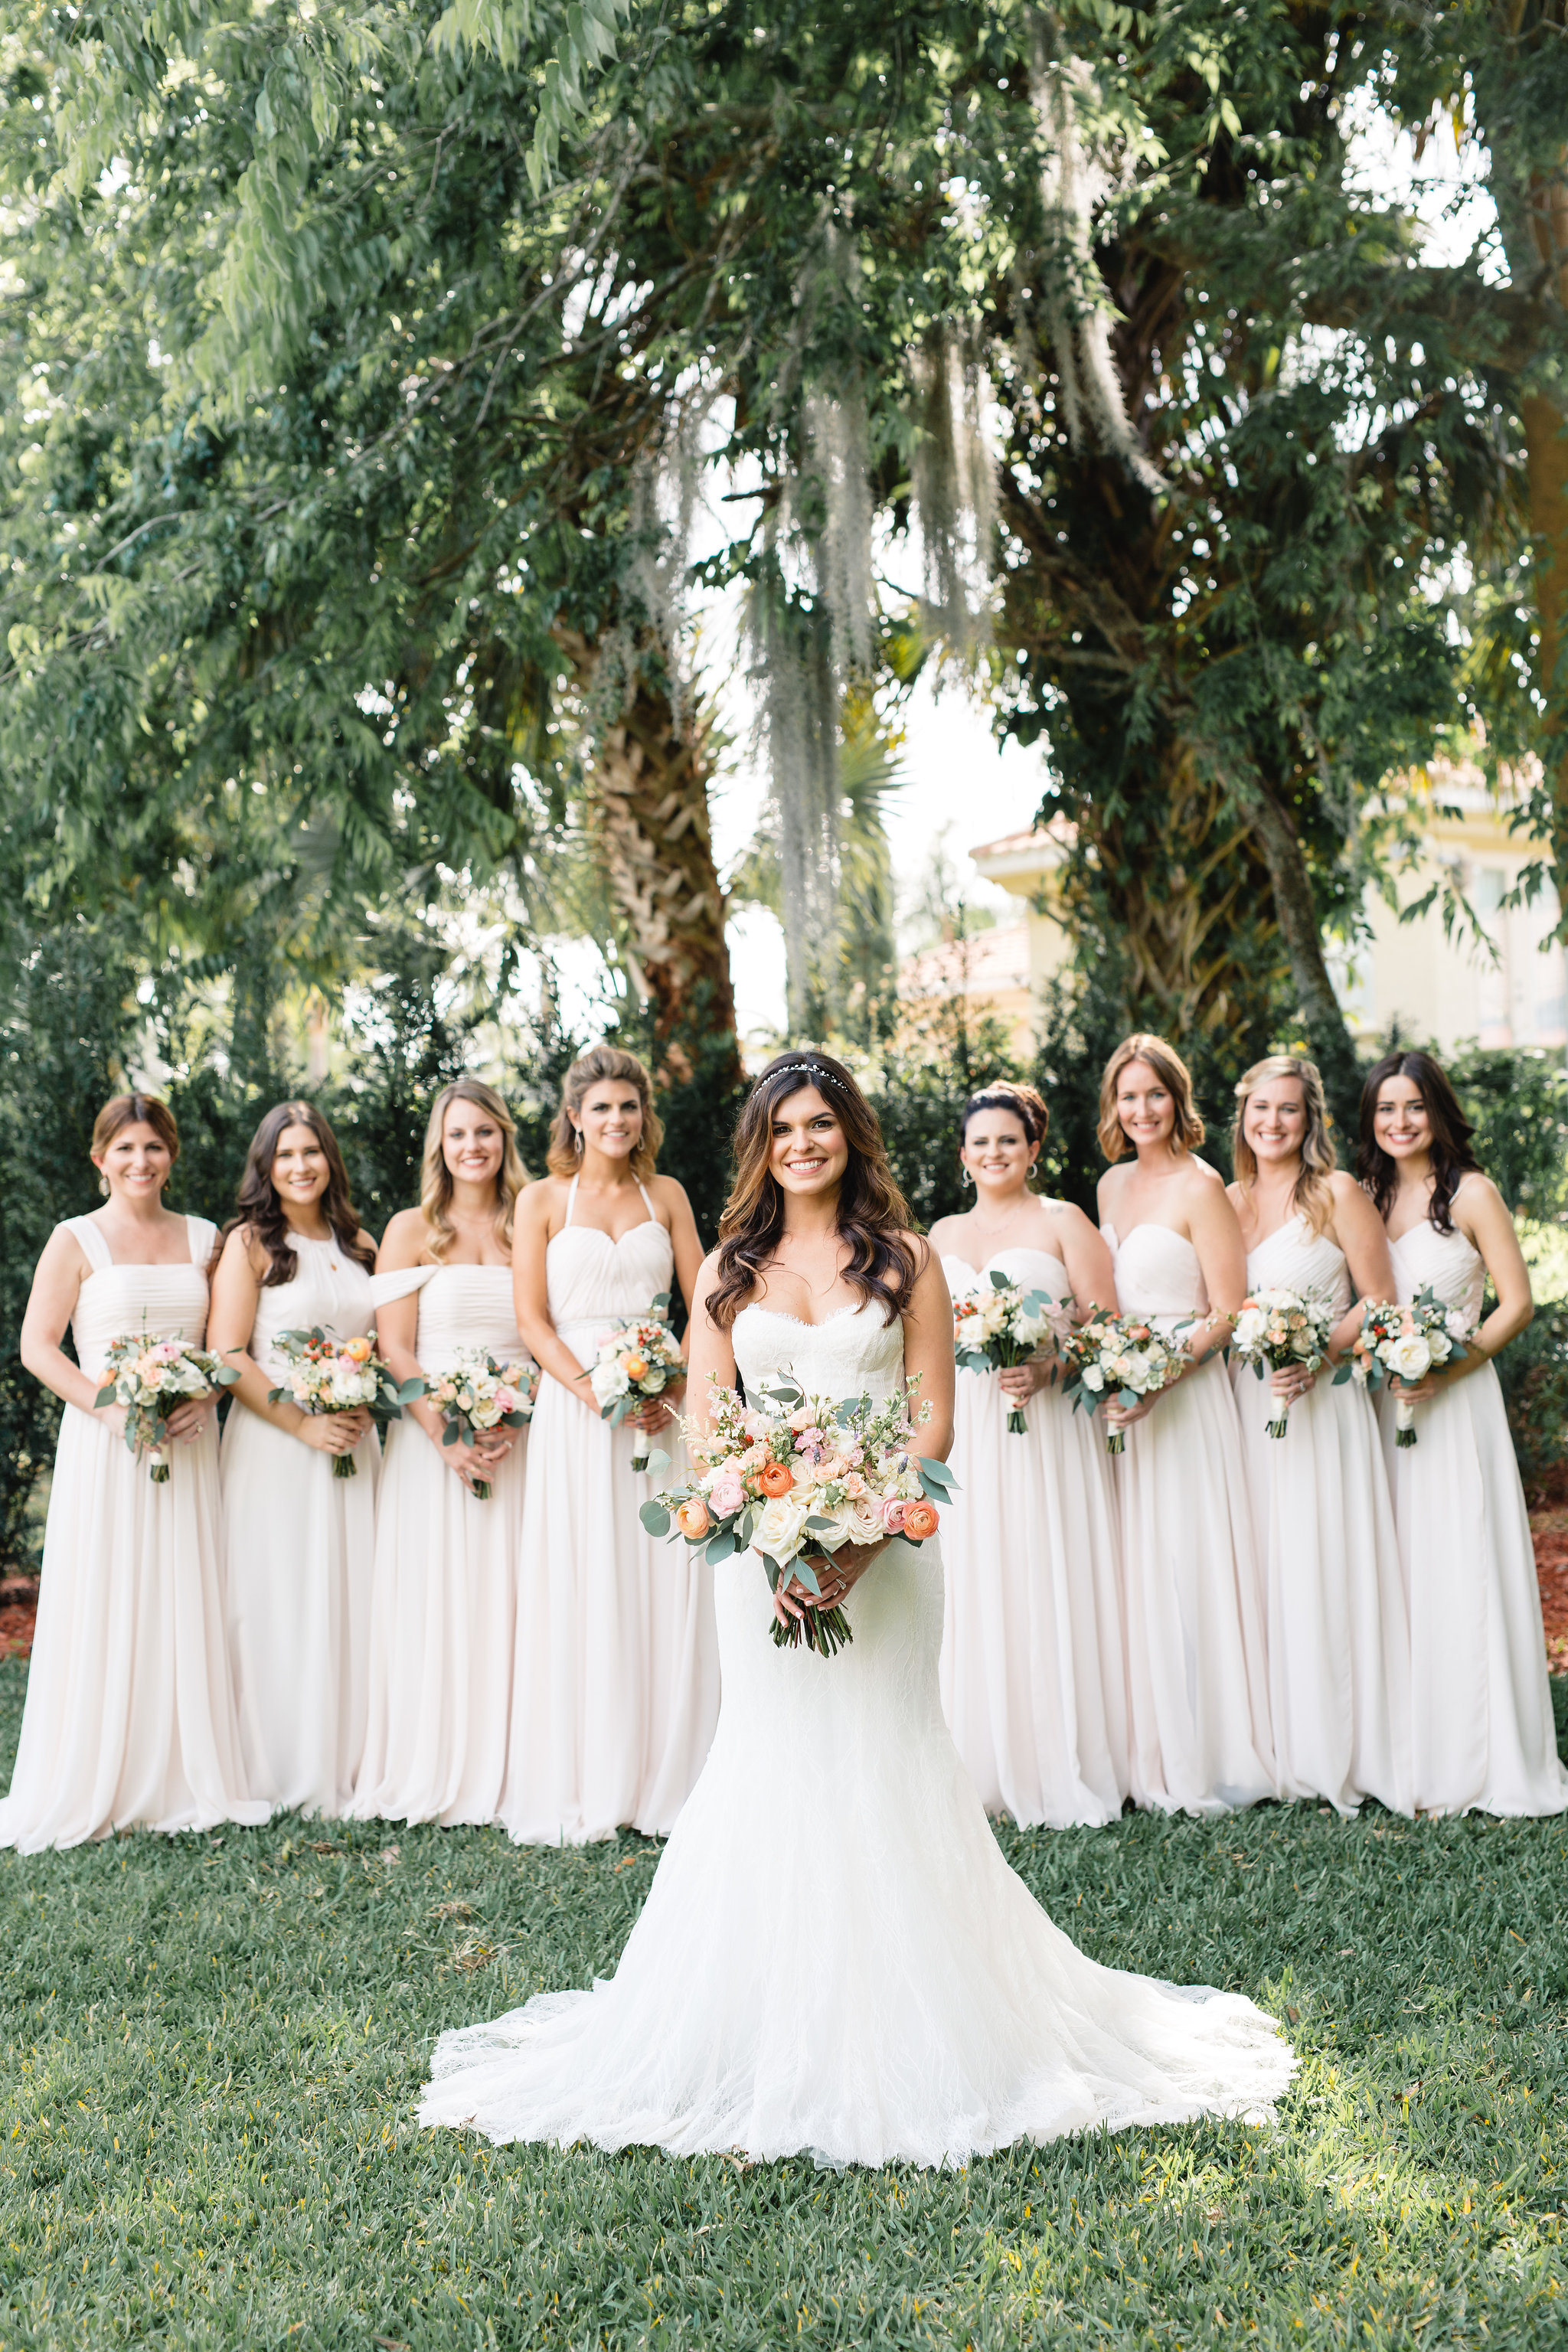 Blush Bridesmaids Dresses with ivory, blush and pink bouquets  Blush & White Garden wedding at Luxmore Grande Estate in Orlando, Florida  Orlando Wedding Planner Blue Ribbon Weddings  Orlando Wedding Photographer JP Pratt Photography  Wedding Ceremony & Reception at Luxmore Grande Estate